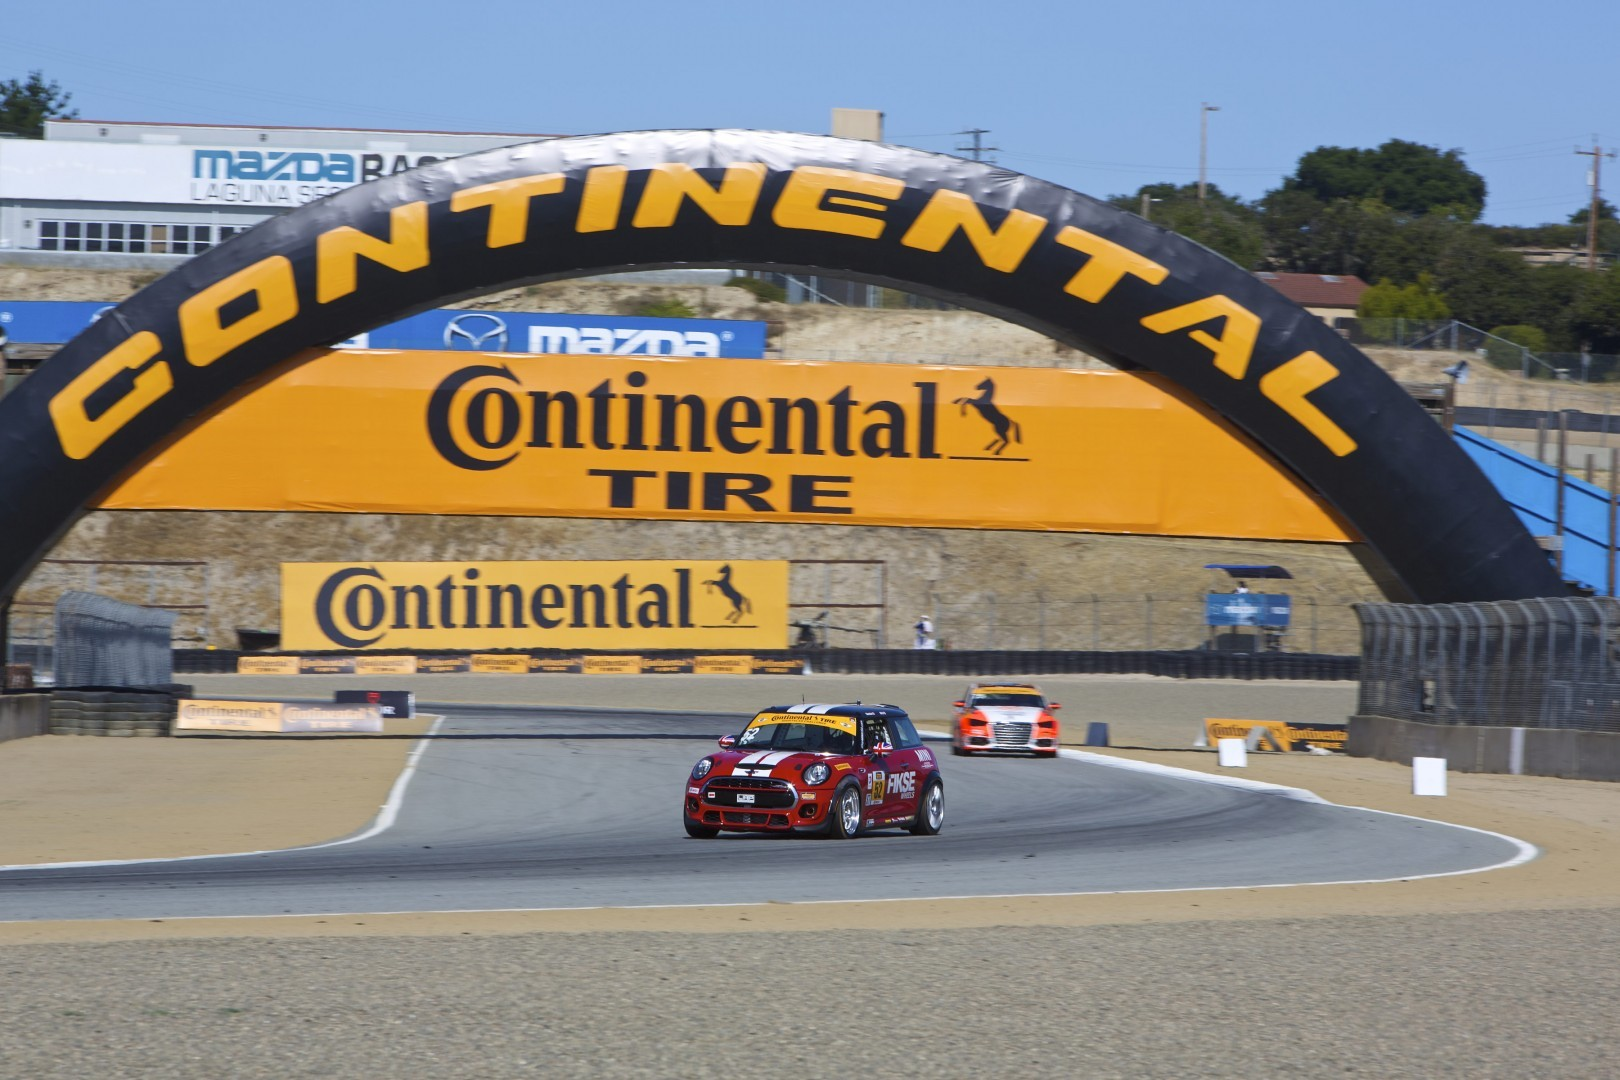 MINI John Cooper Works car #37 finishes 10th at Laguna Seca